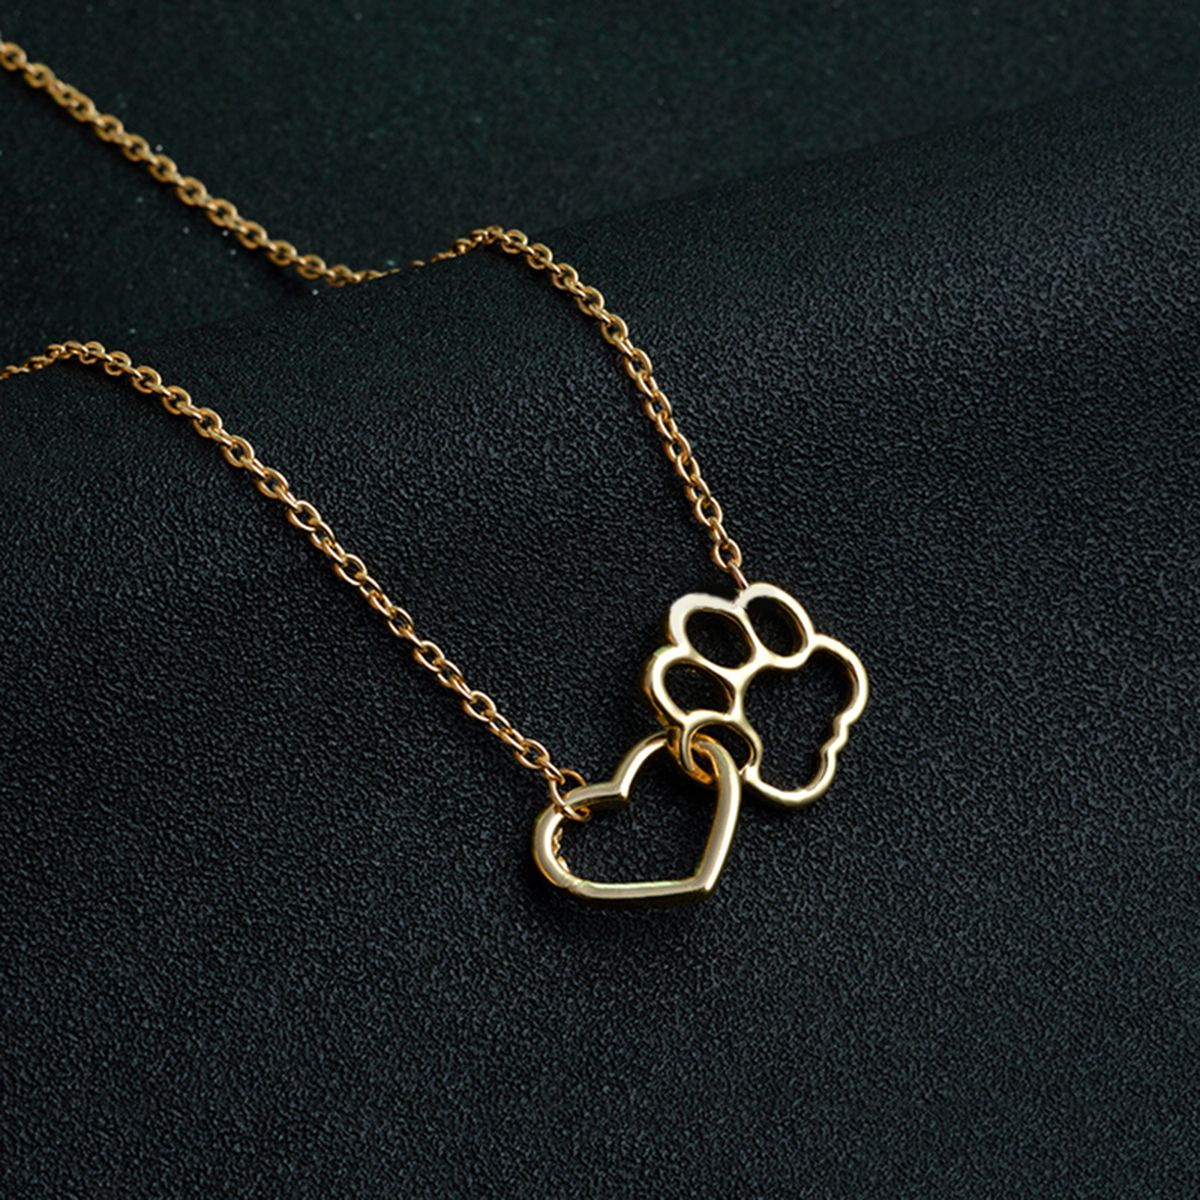 SALE HOLLOW PET PAW FOOTPRINT NECKLACES FOR CAT LOVERS-Cat Jewelry-Free Shipping SALE HOLLOW PET PAW FOOTPRINT NECKLACES FOR CAT LOVERS-Cat Jewelry-Free Shipping HTB1SCkeRpXXXXcJXFXXq6xXFXXXv